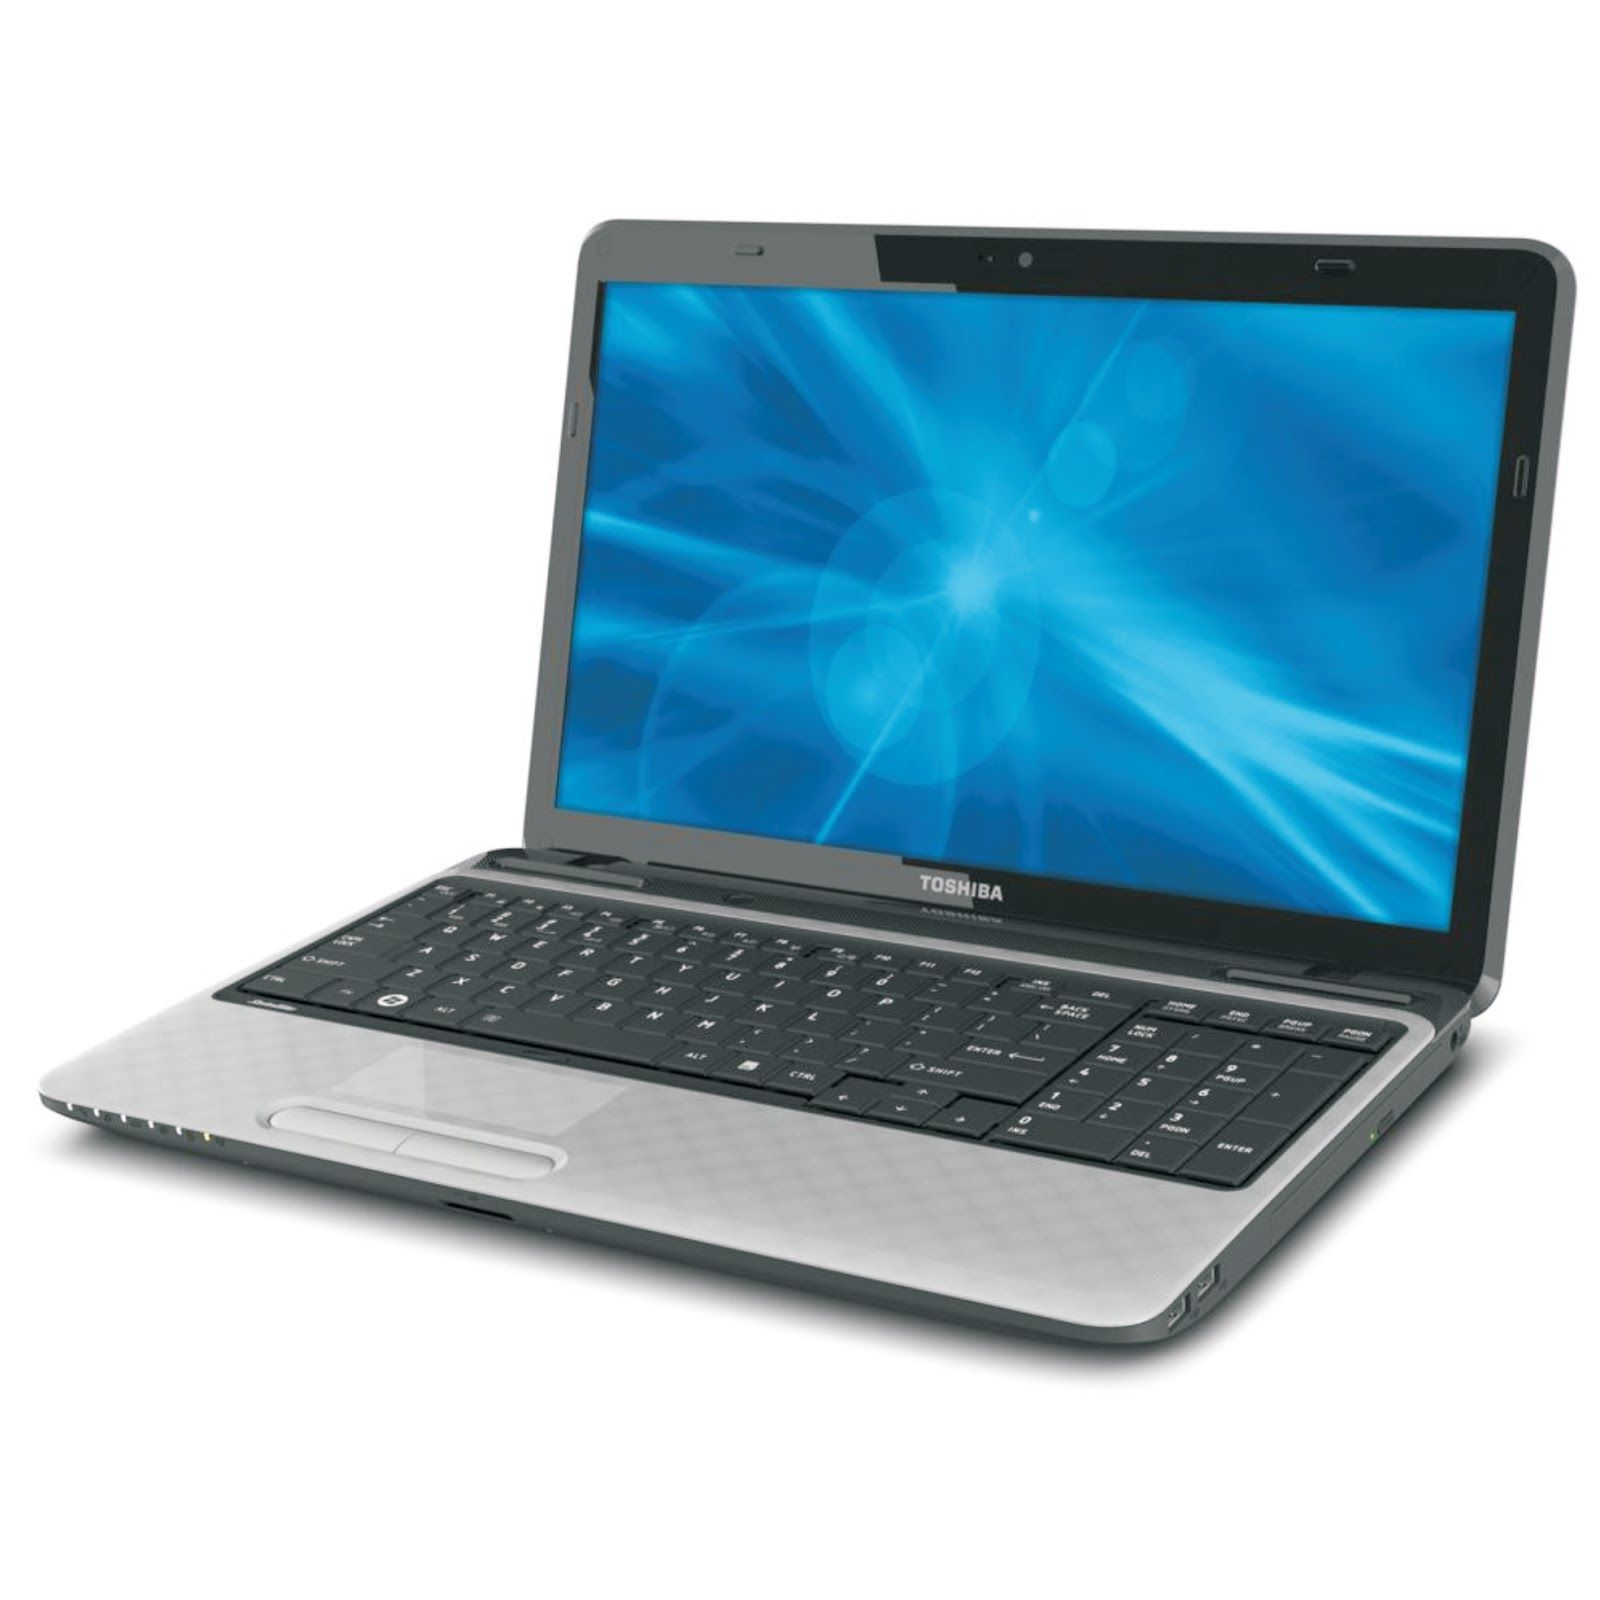 L755-S5271 Laptop Computer 15.6-Inch LED (Grey) | Best Laptop ...